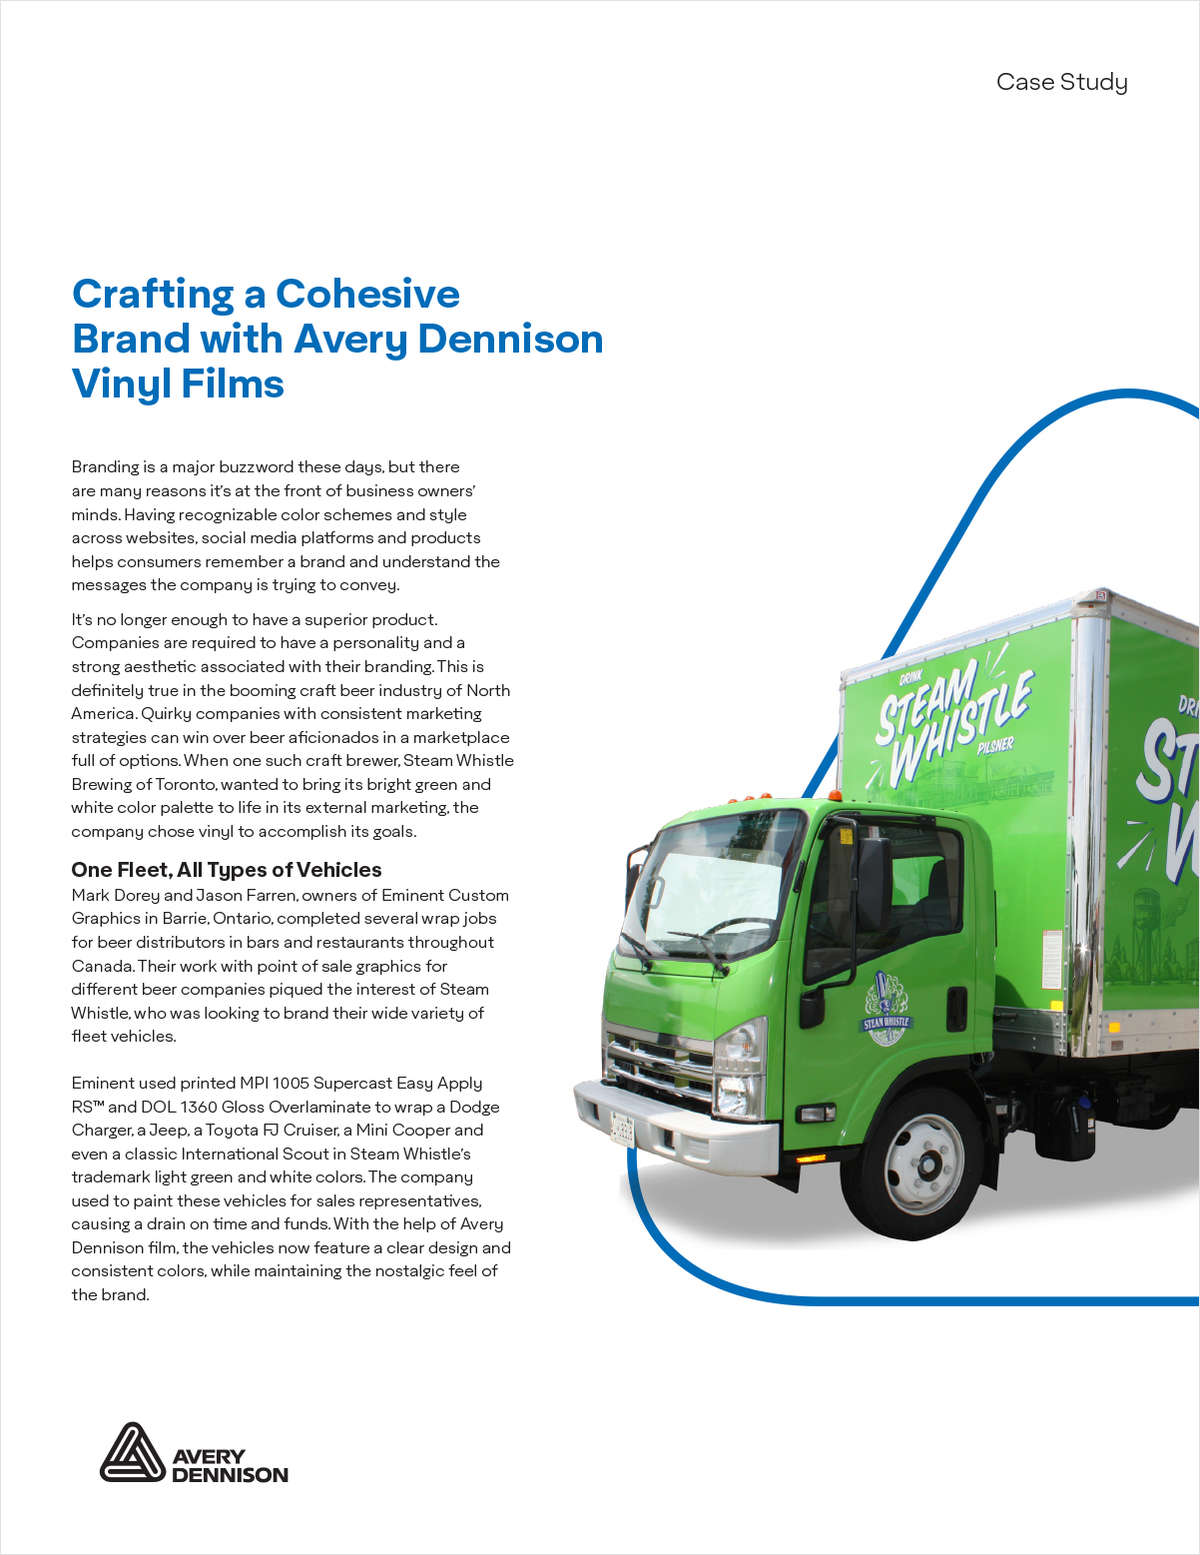 Crafting a Cohesive Brand with Fleet Wrap Films